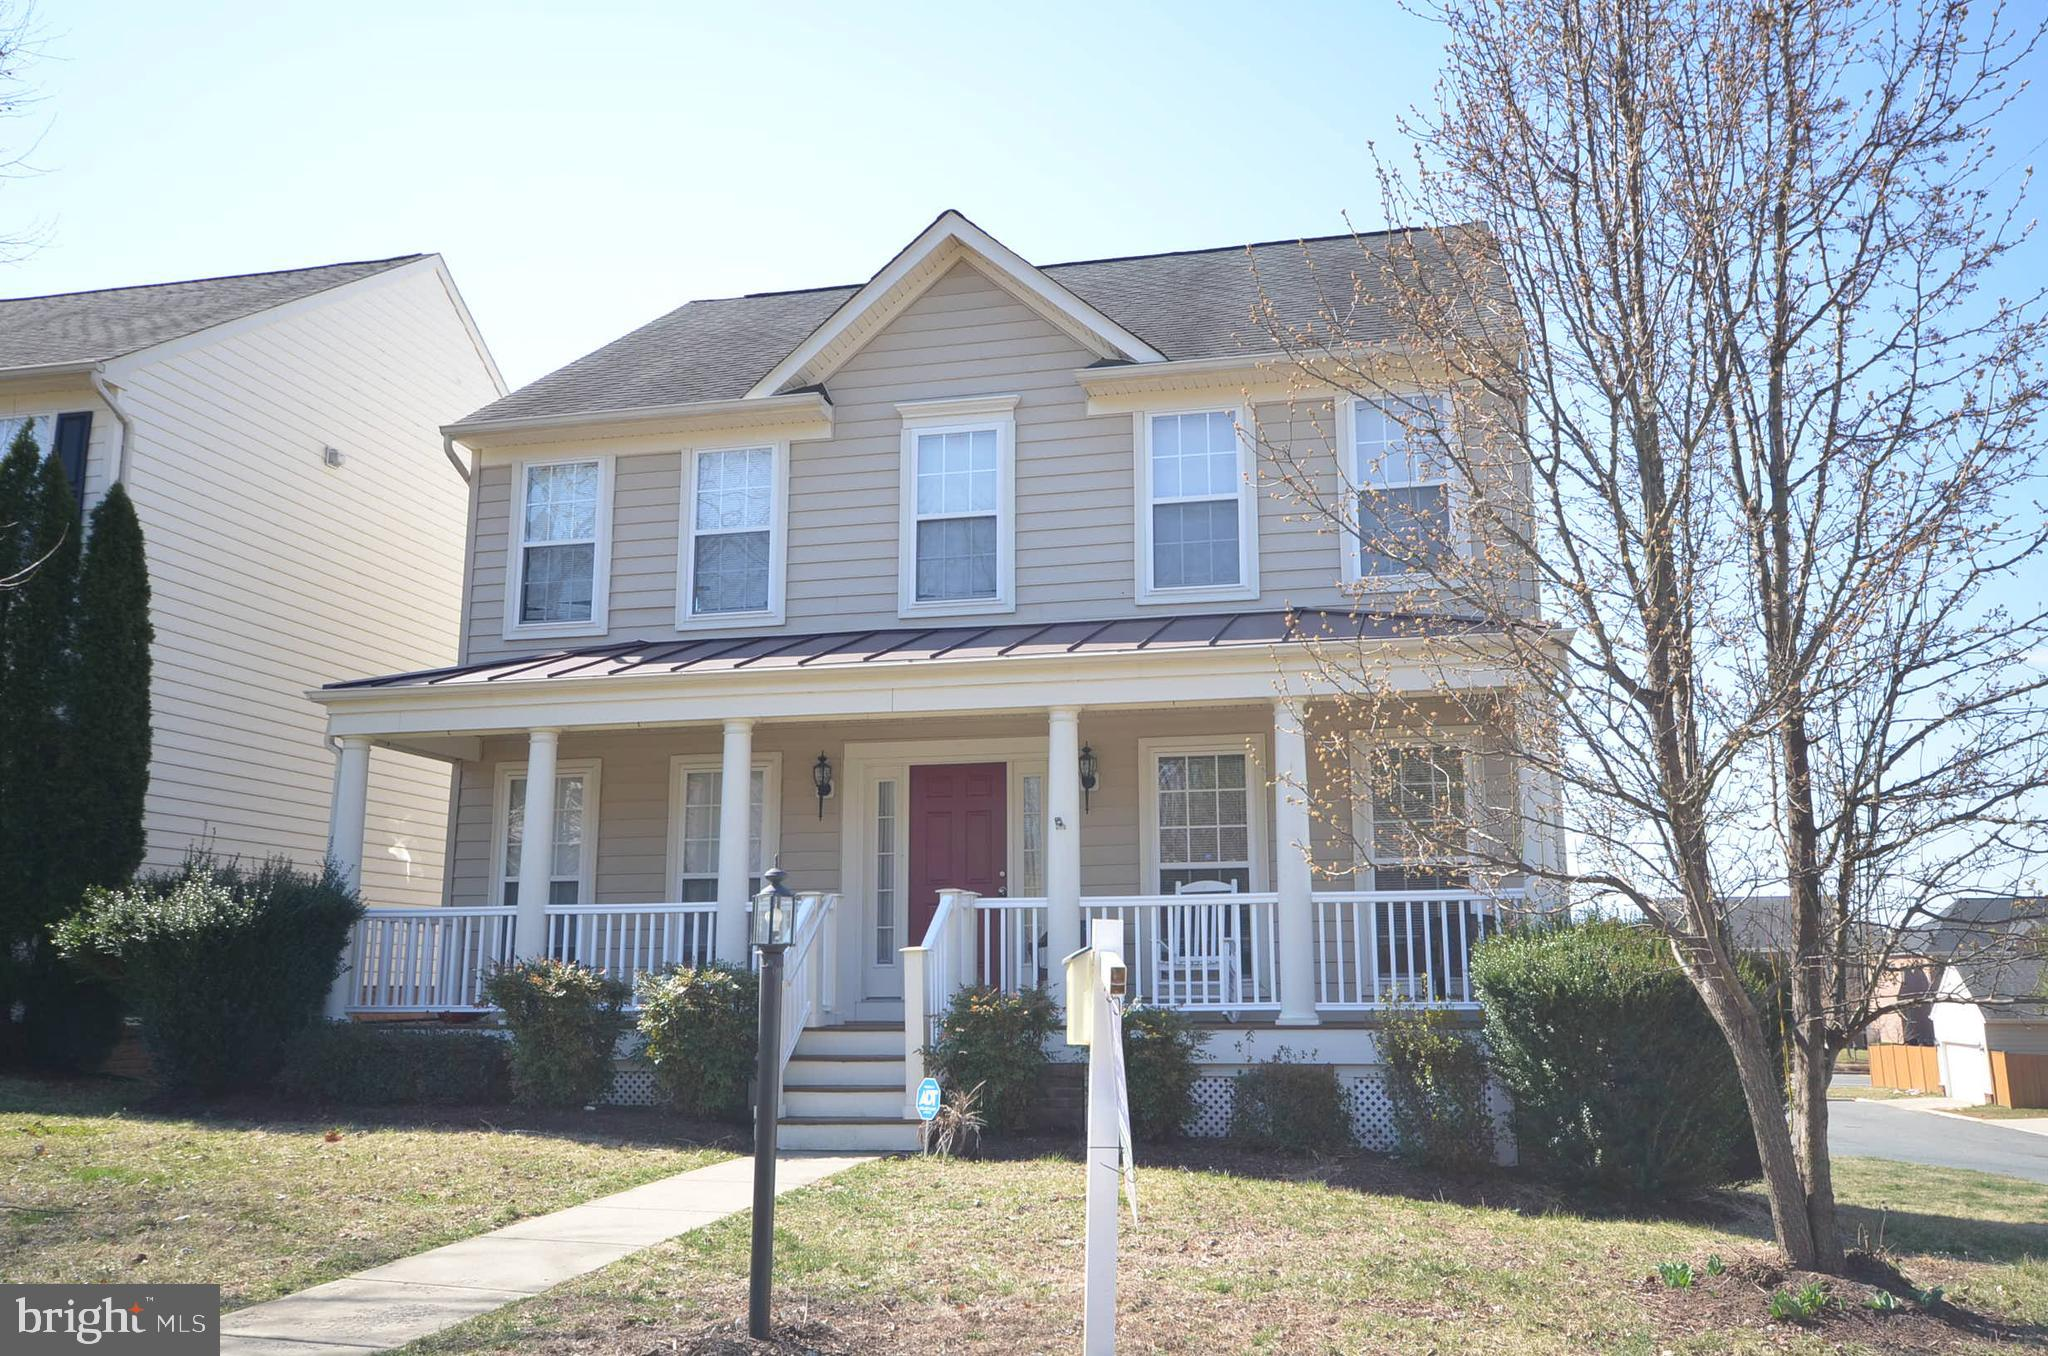 5Br, 3.5BA, appx 3,200sf Rare walk out basement! Melville Model w/ 20K Front Porch Option! Lot Premium-15k-View Trees Plus Oversized Corner Lot-Must See! See Fence Plans. Gourmet Kitchen-Loaded-Eternal Black Granite! Lower Level Au-Pair/In-Law Suite-Rec room, Legal BR, Full BA +Bright Walk-out + Extra Windows! Hard to find-no thru Street w/ TONS-Street Parking! Year-Round-Indoor -Pool!